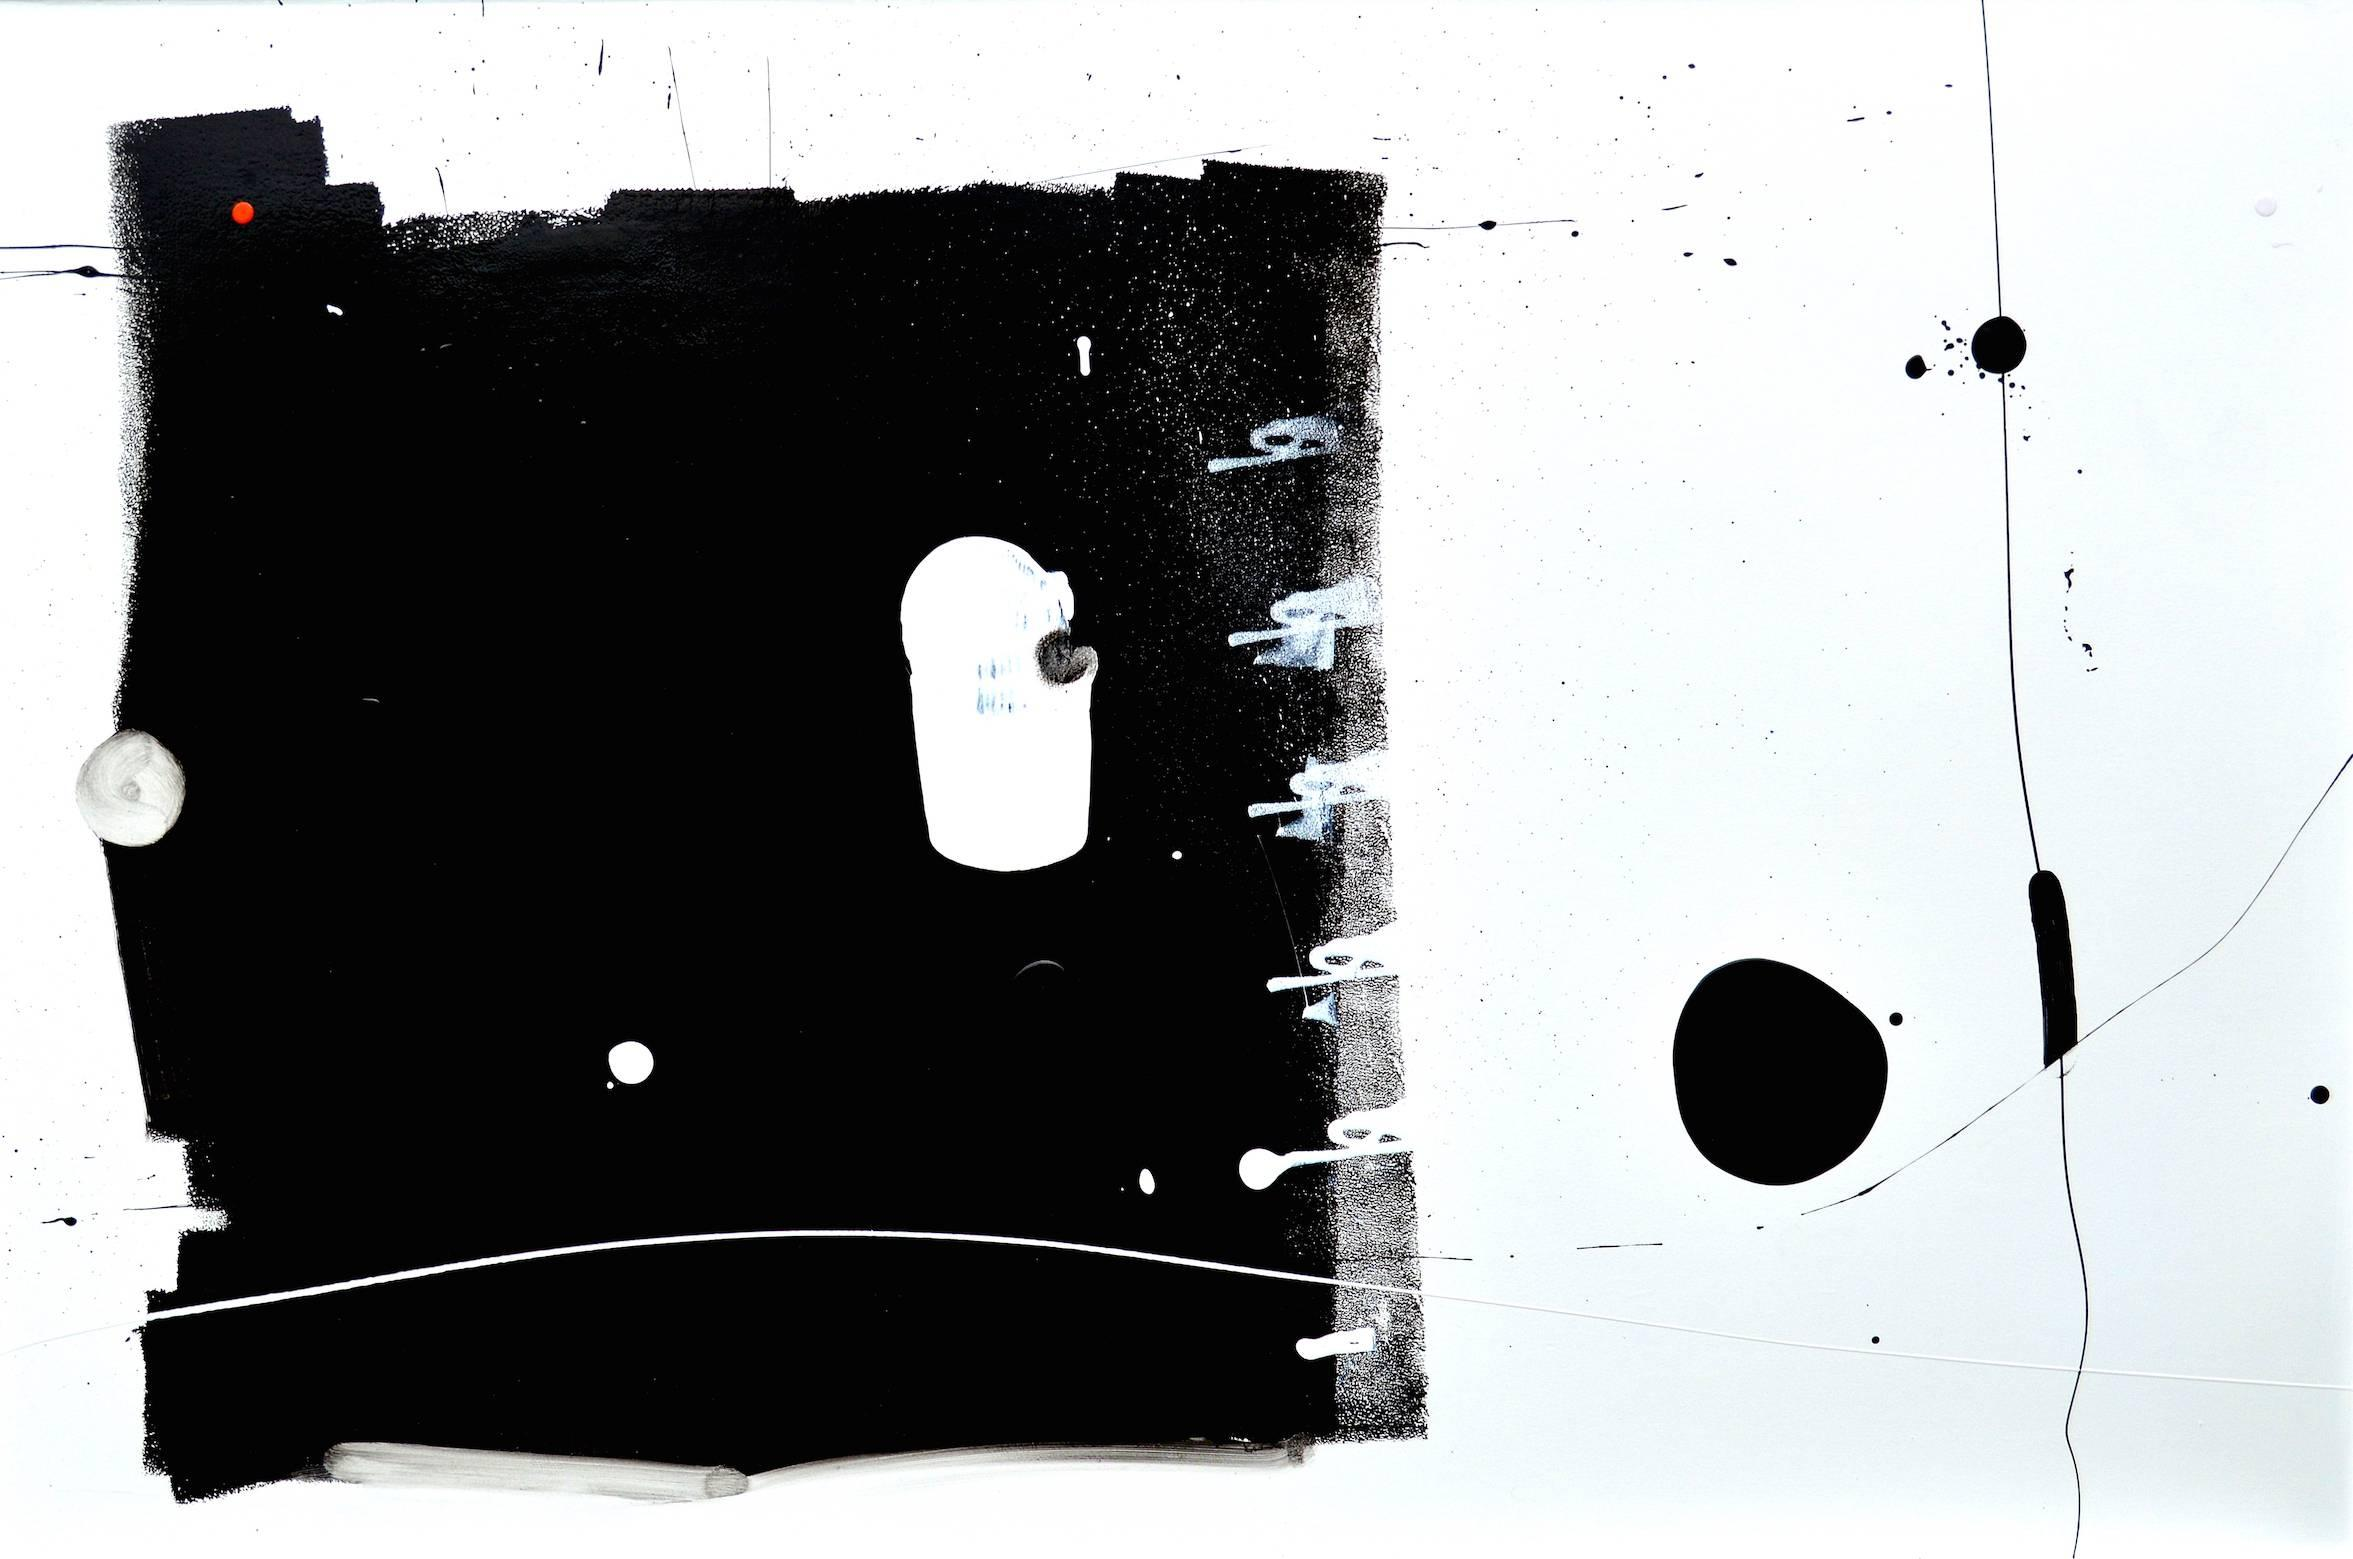 Curious Big Black Square Running Away from Black Blob Over there Painting